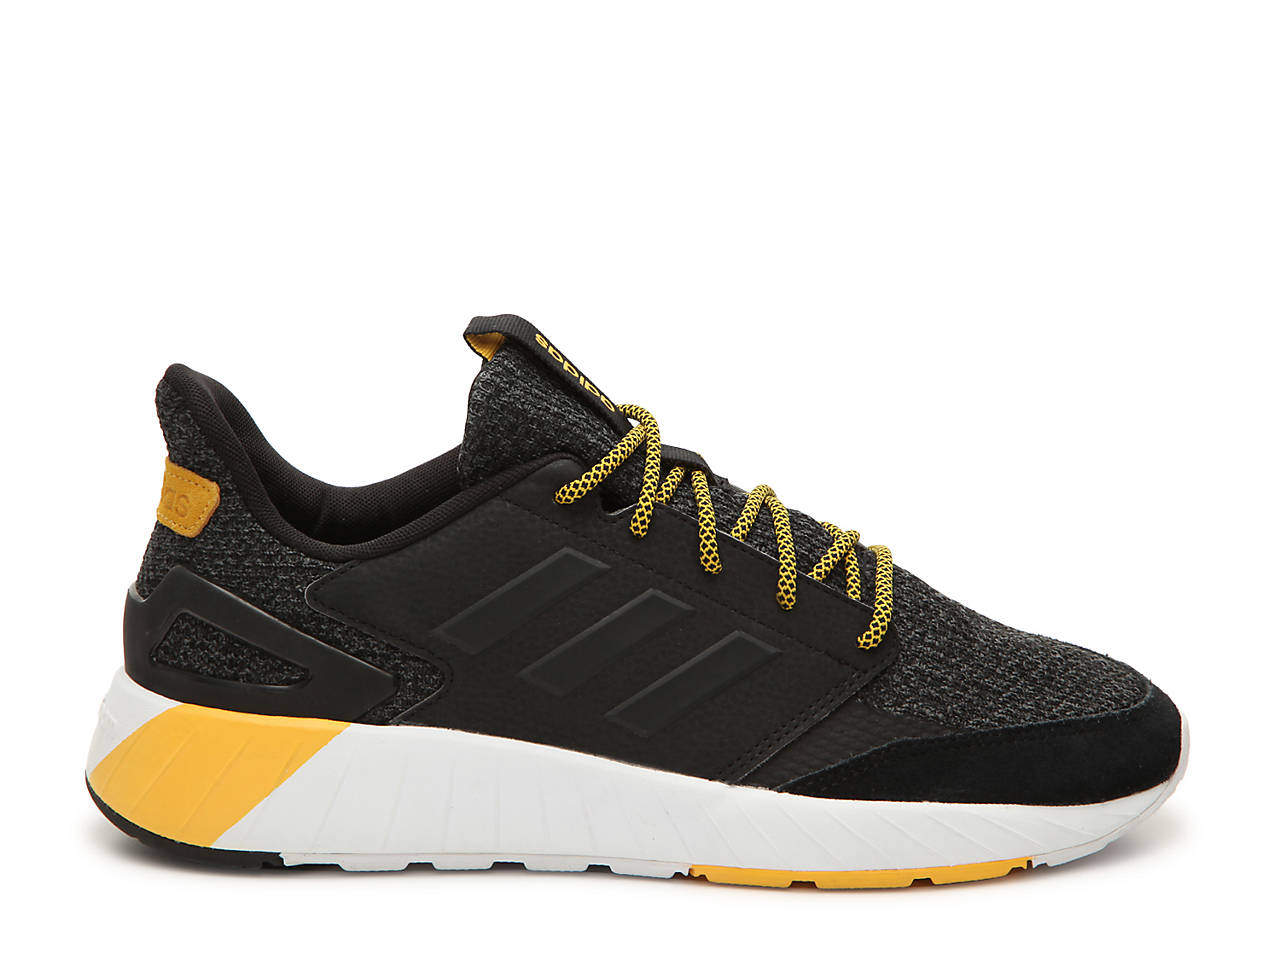 Details about adidas Questar Strike Mid Men's Sneakers size